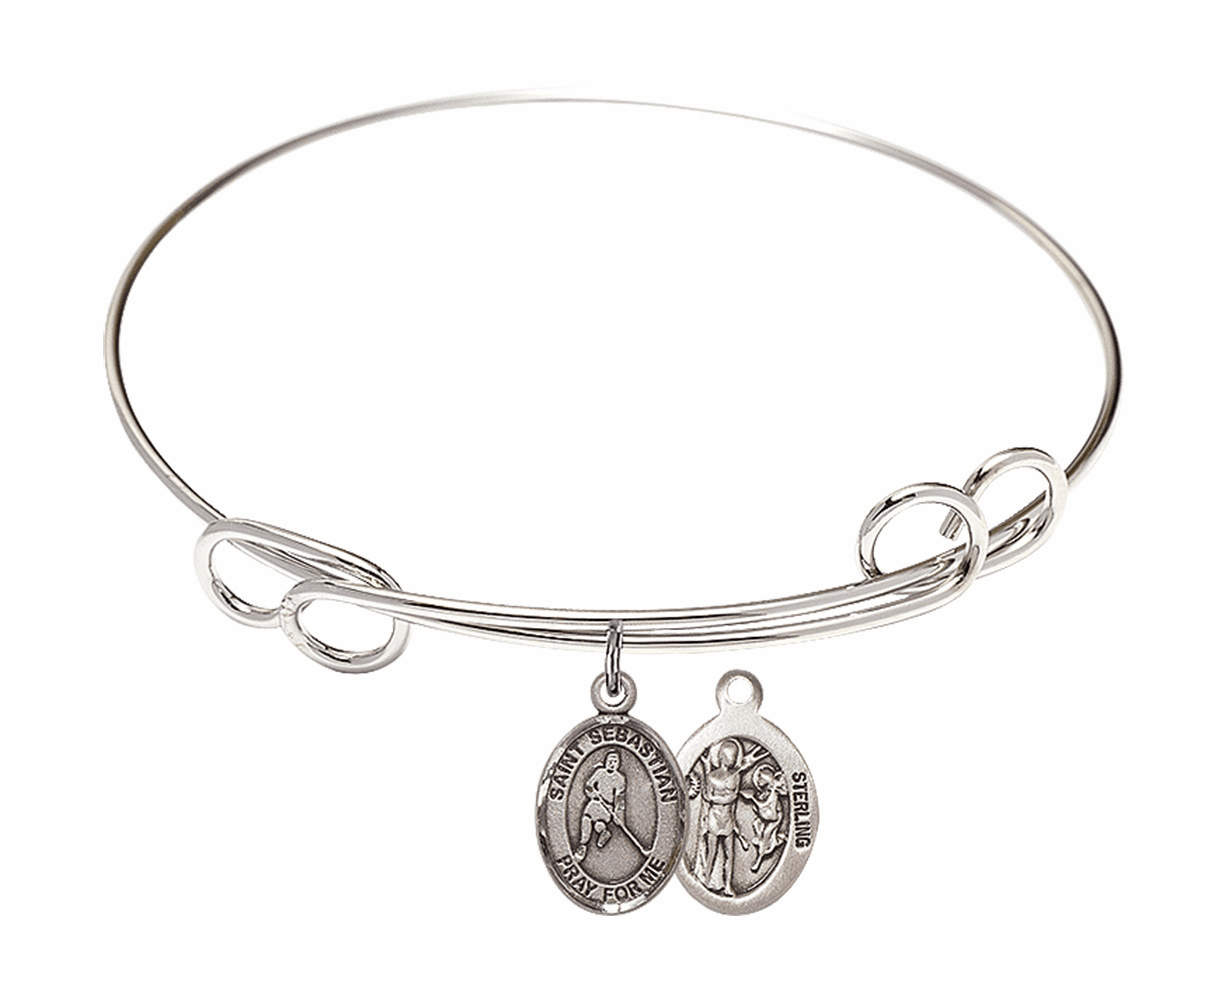 Round Loop St Sebastian Ice Hockey Bangle Charm Bracelet by Bliss